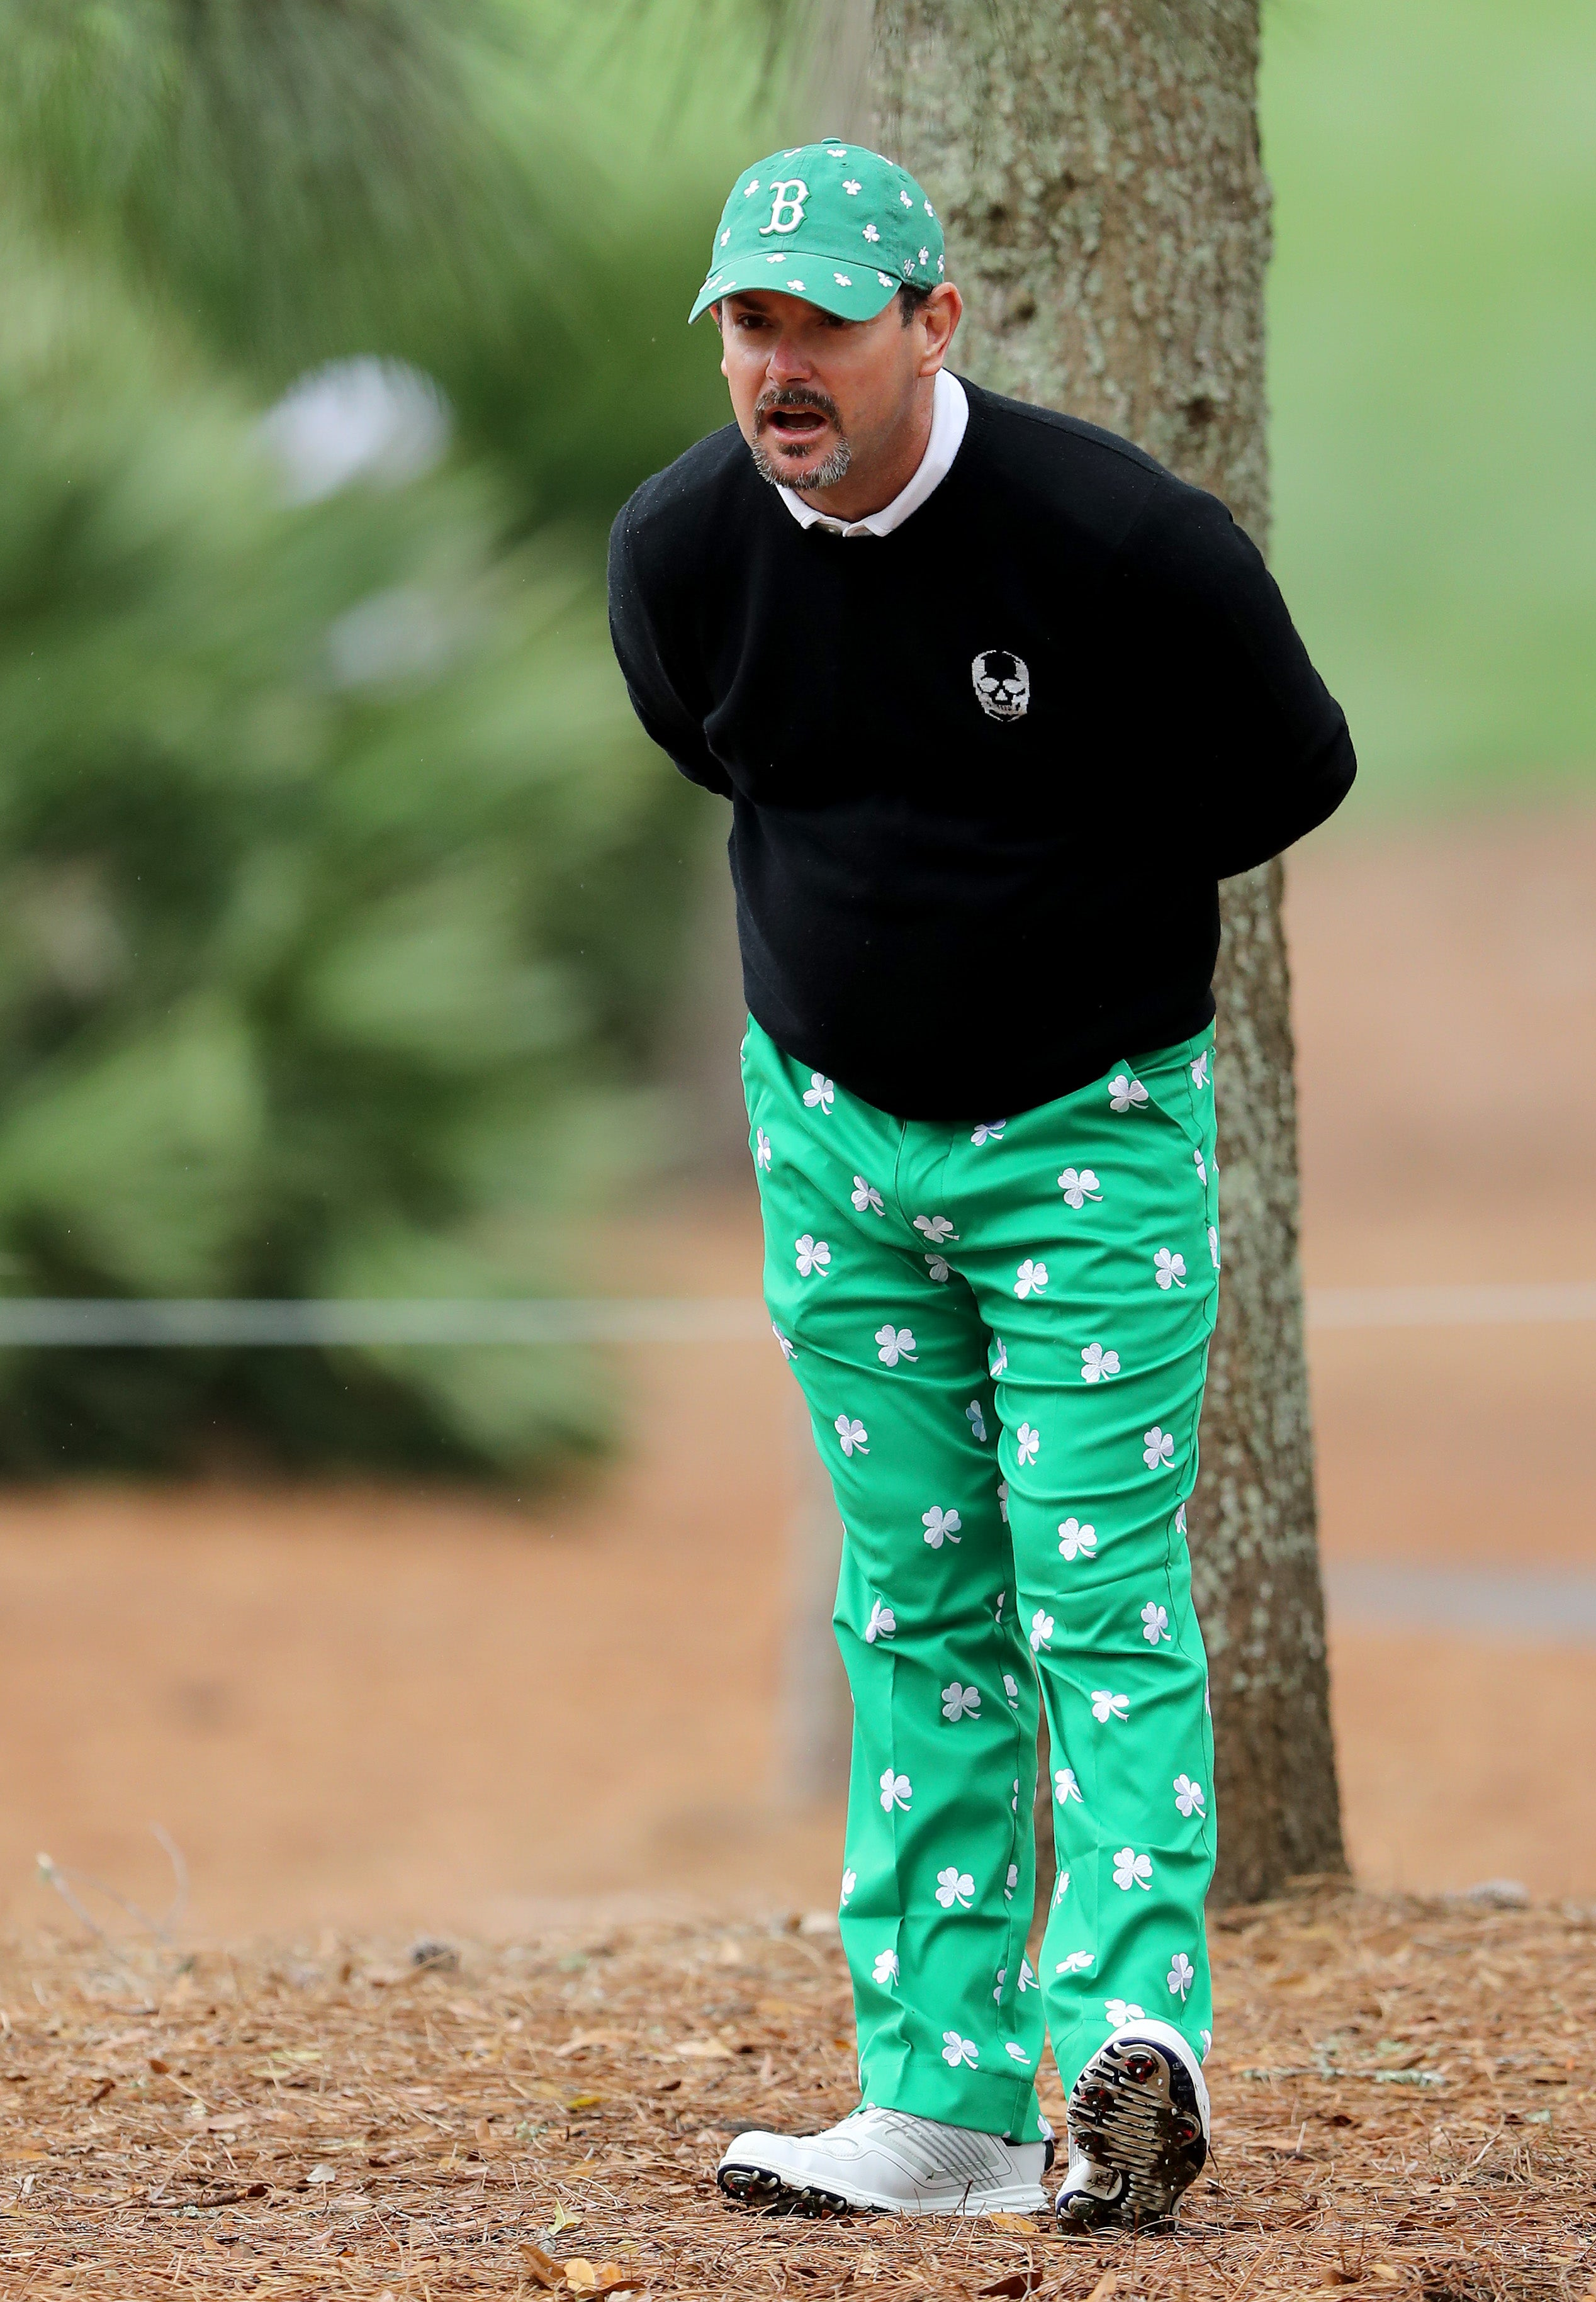 Rory Sabatini has the most St. Patrick's Day spirit.